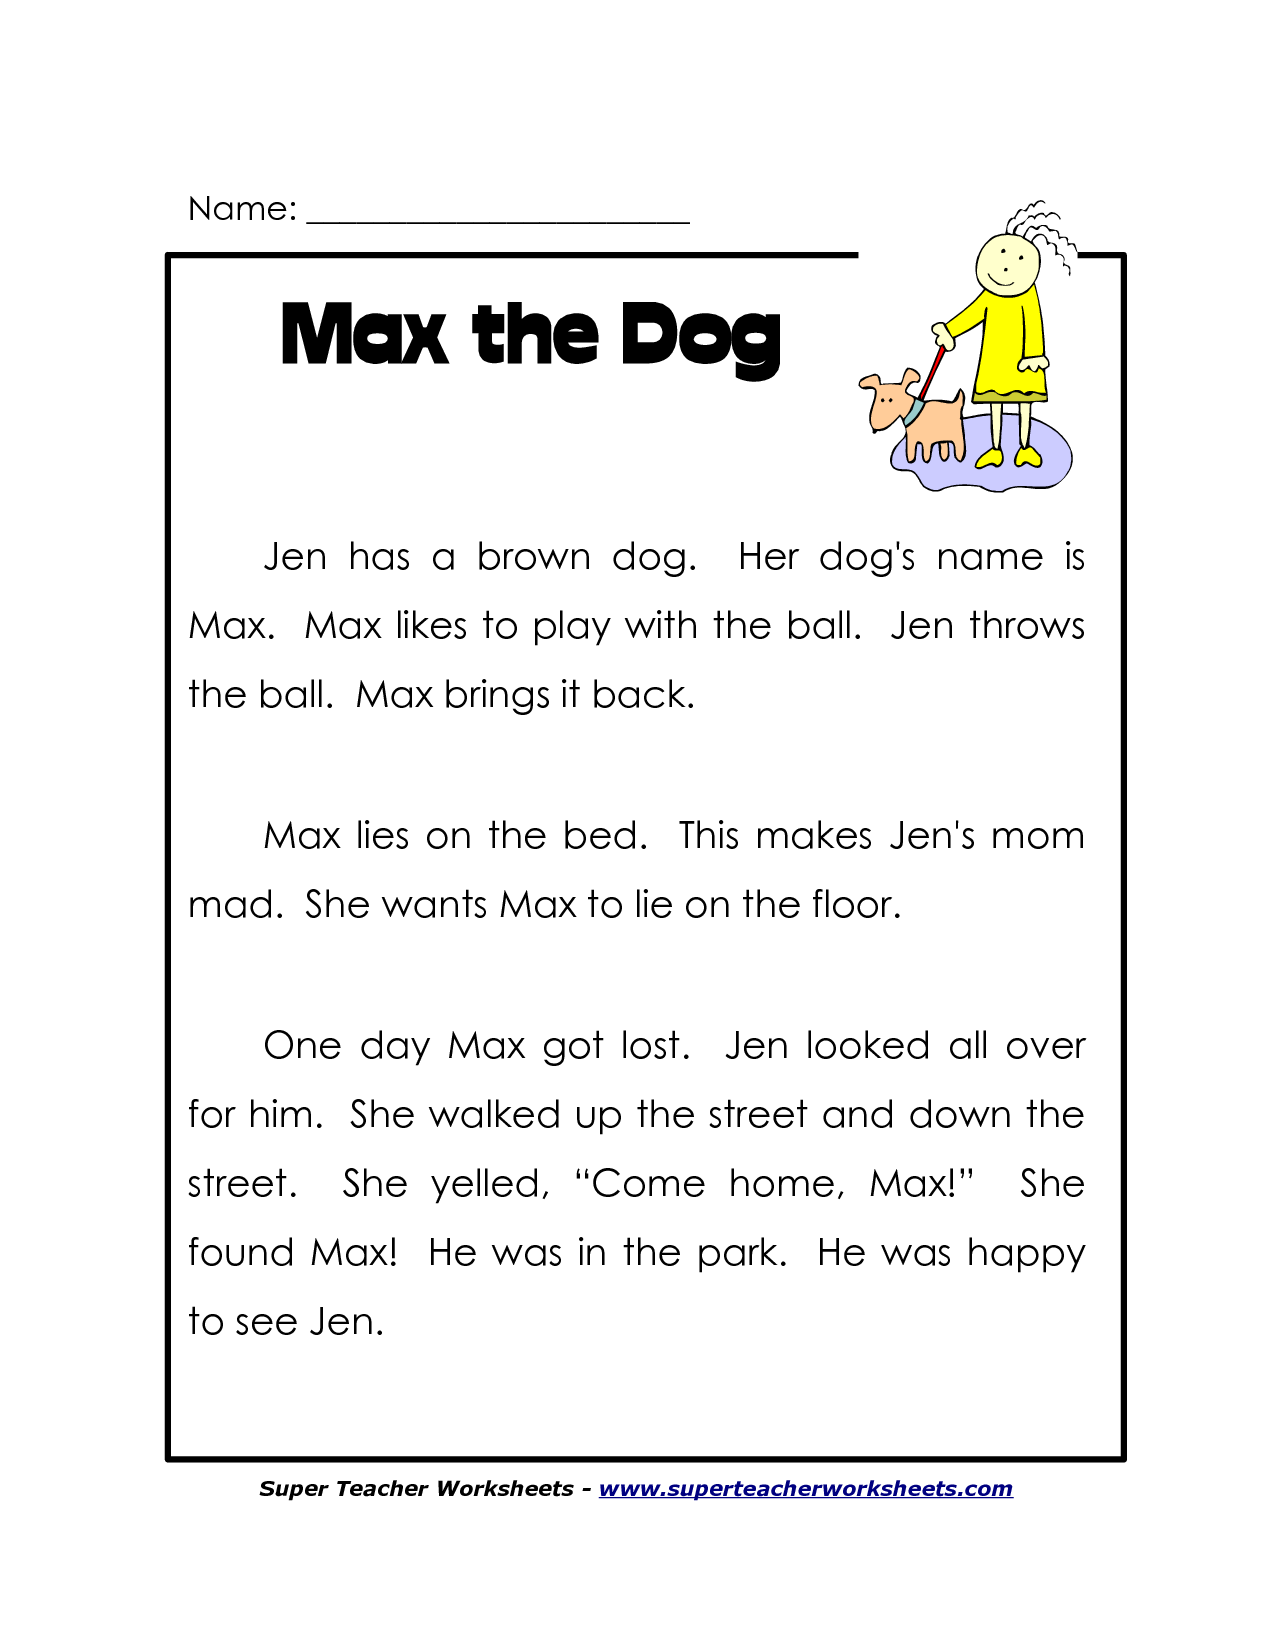 Worksheets Reading Worksheets Printable 7 best images of reading comprehension worksheets free printable 1st grade worksheets